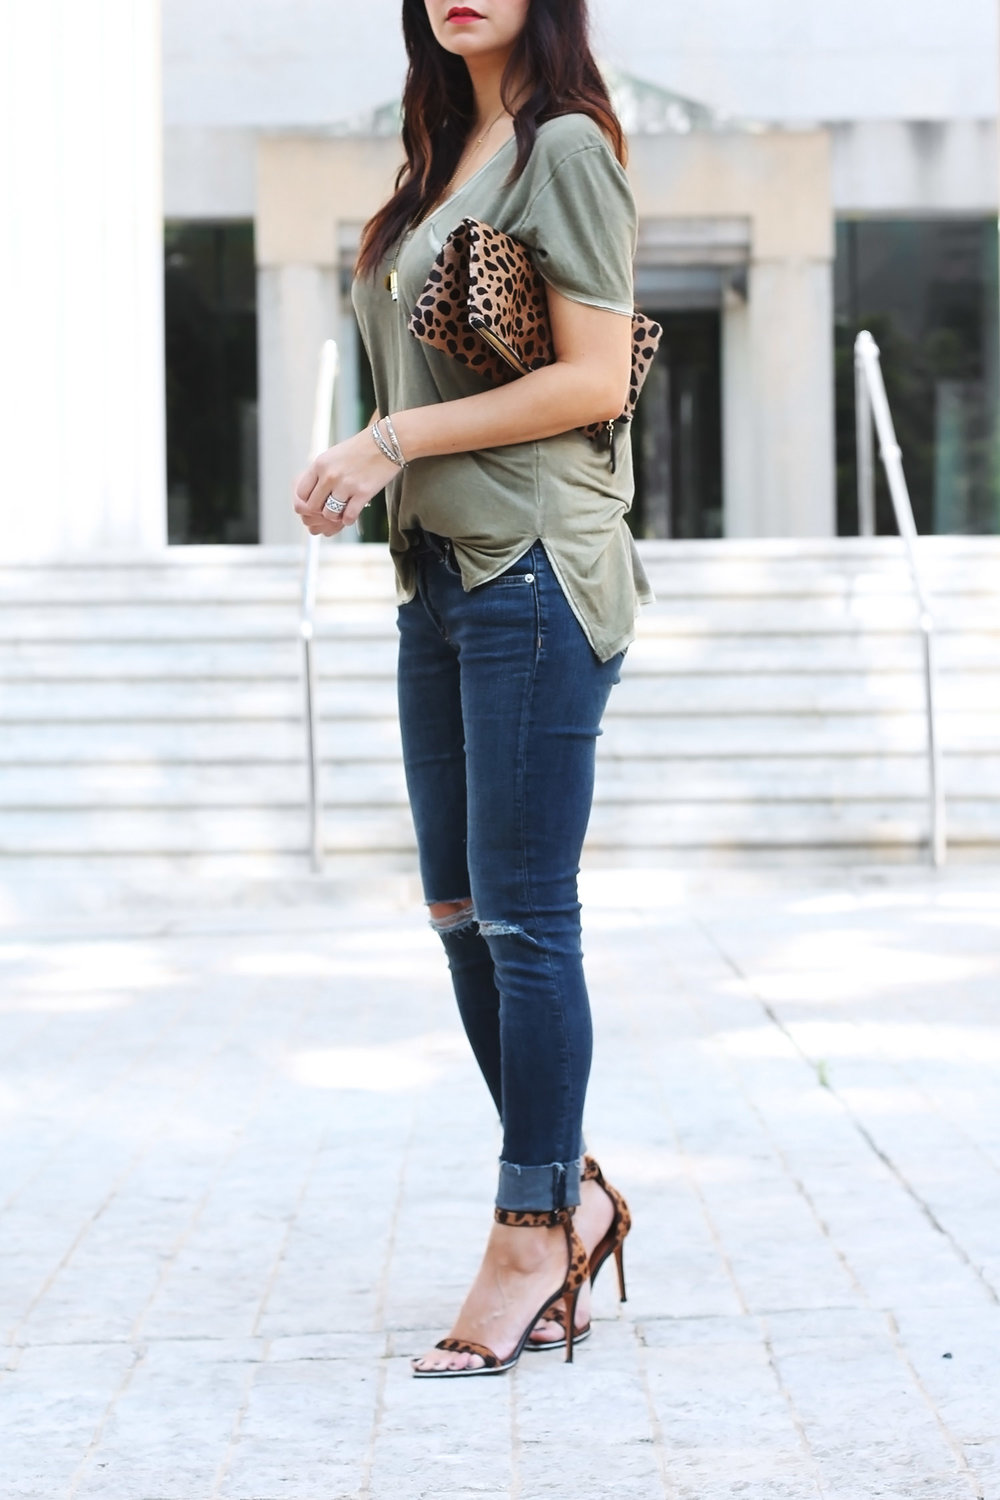 Jeans, T-Shirt, and Heels Style